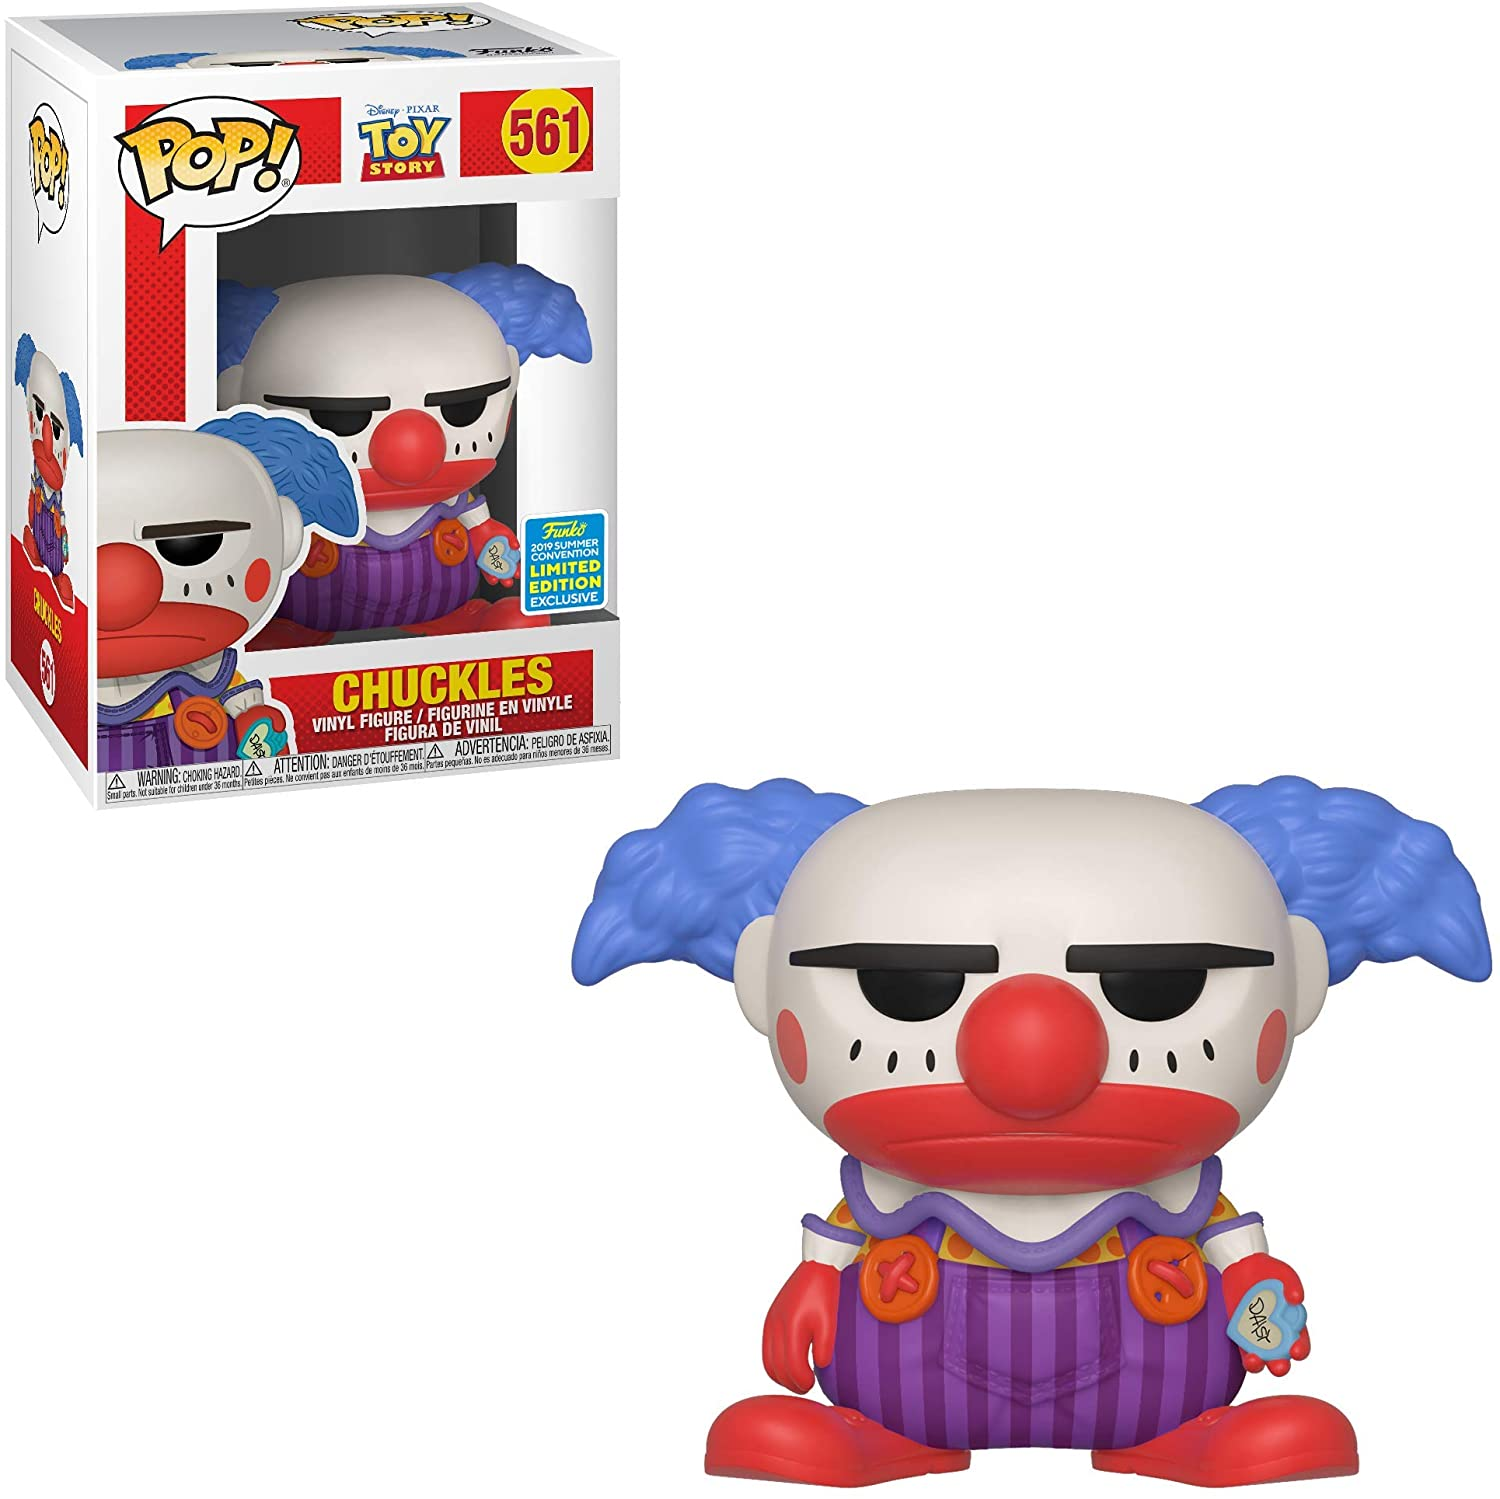 Toy Story - Chuckles 561 Funko Pop SDCC Exclusive